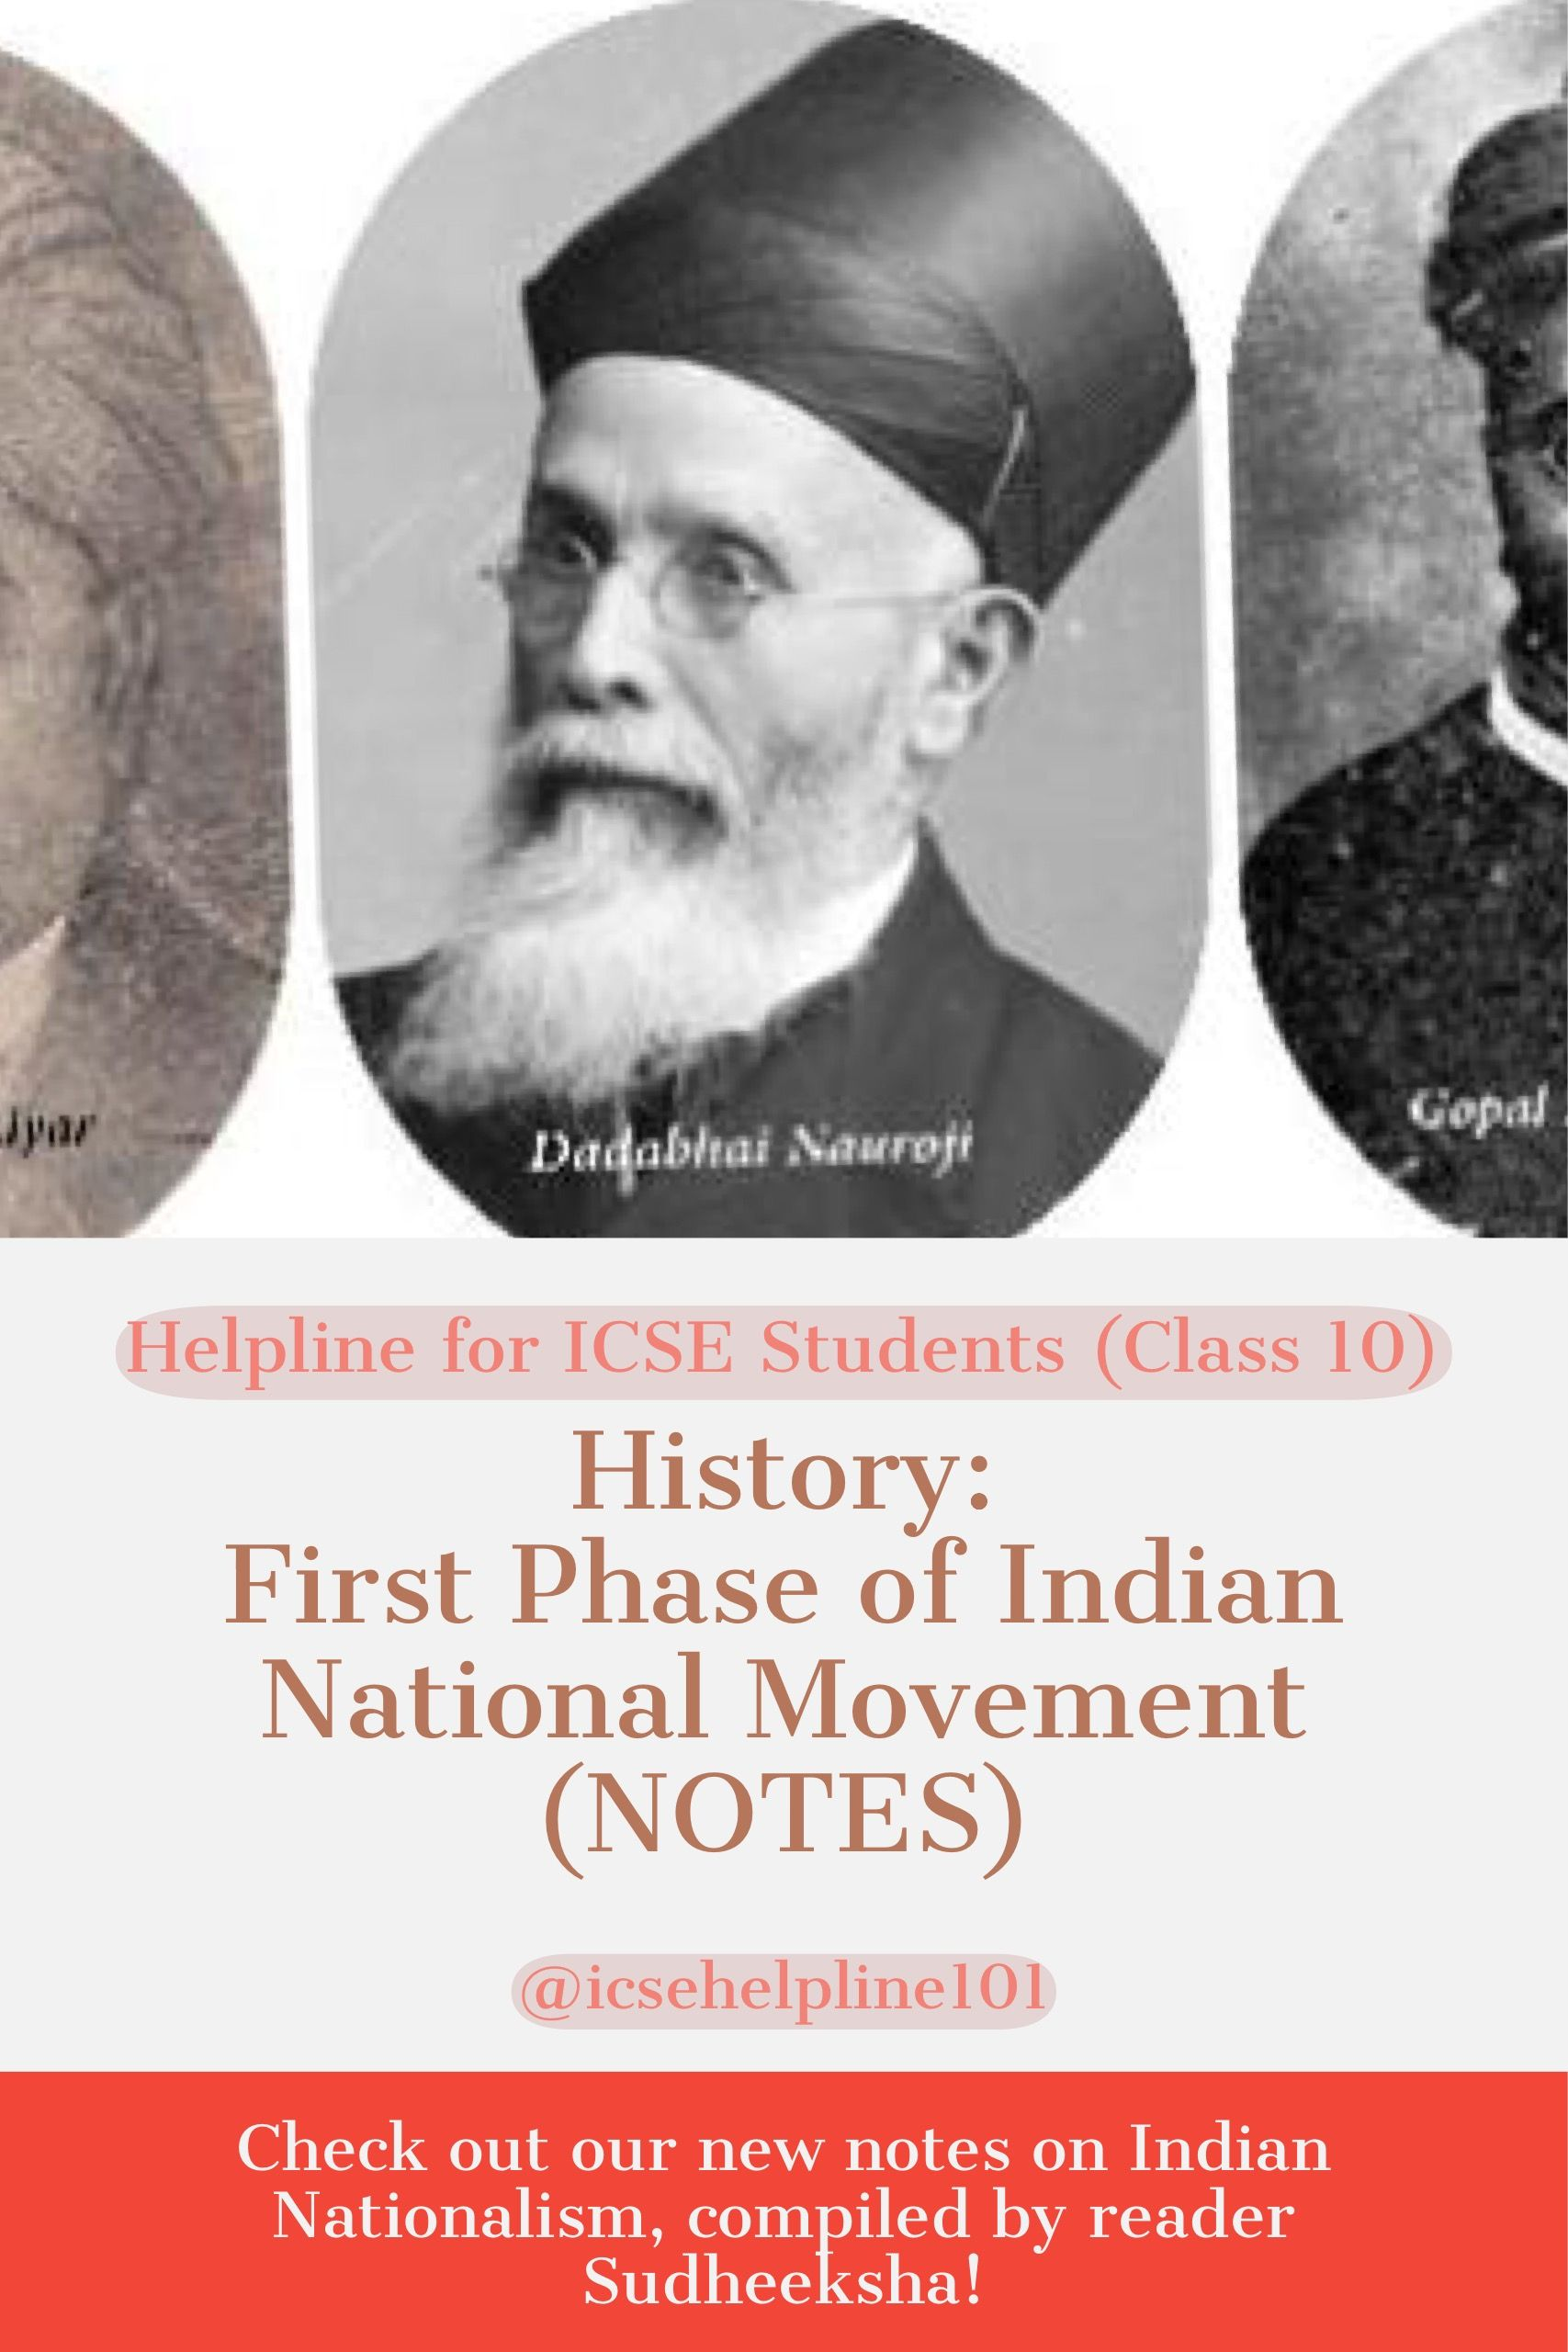 ICSE History First Phase of Indian National Movement